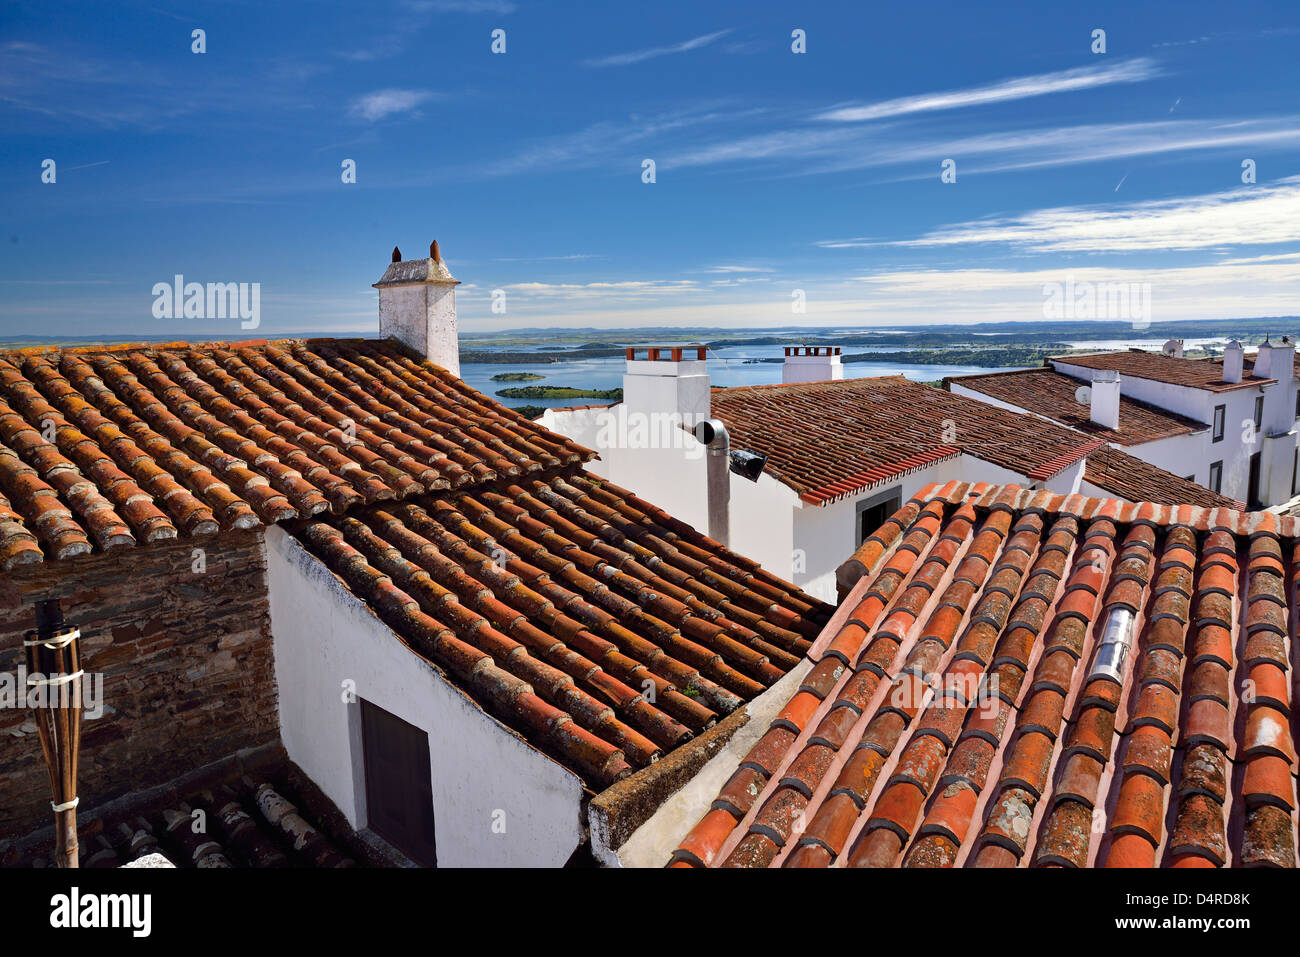 Portugal, Alentejo: Overview to the roofs of medieval village Monsaraz and to the Barrage of Alqueva - Stock Image